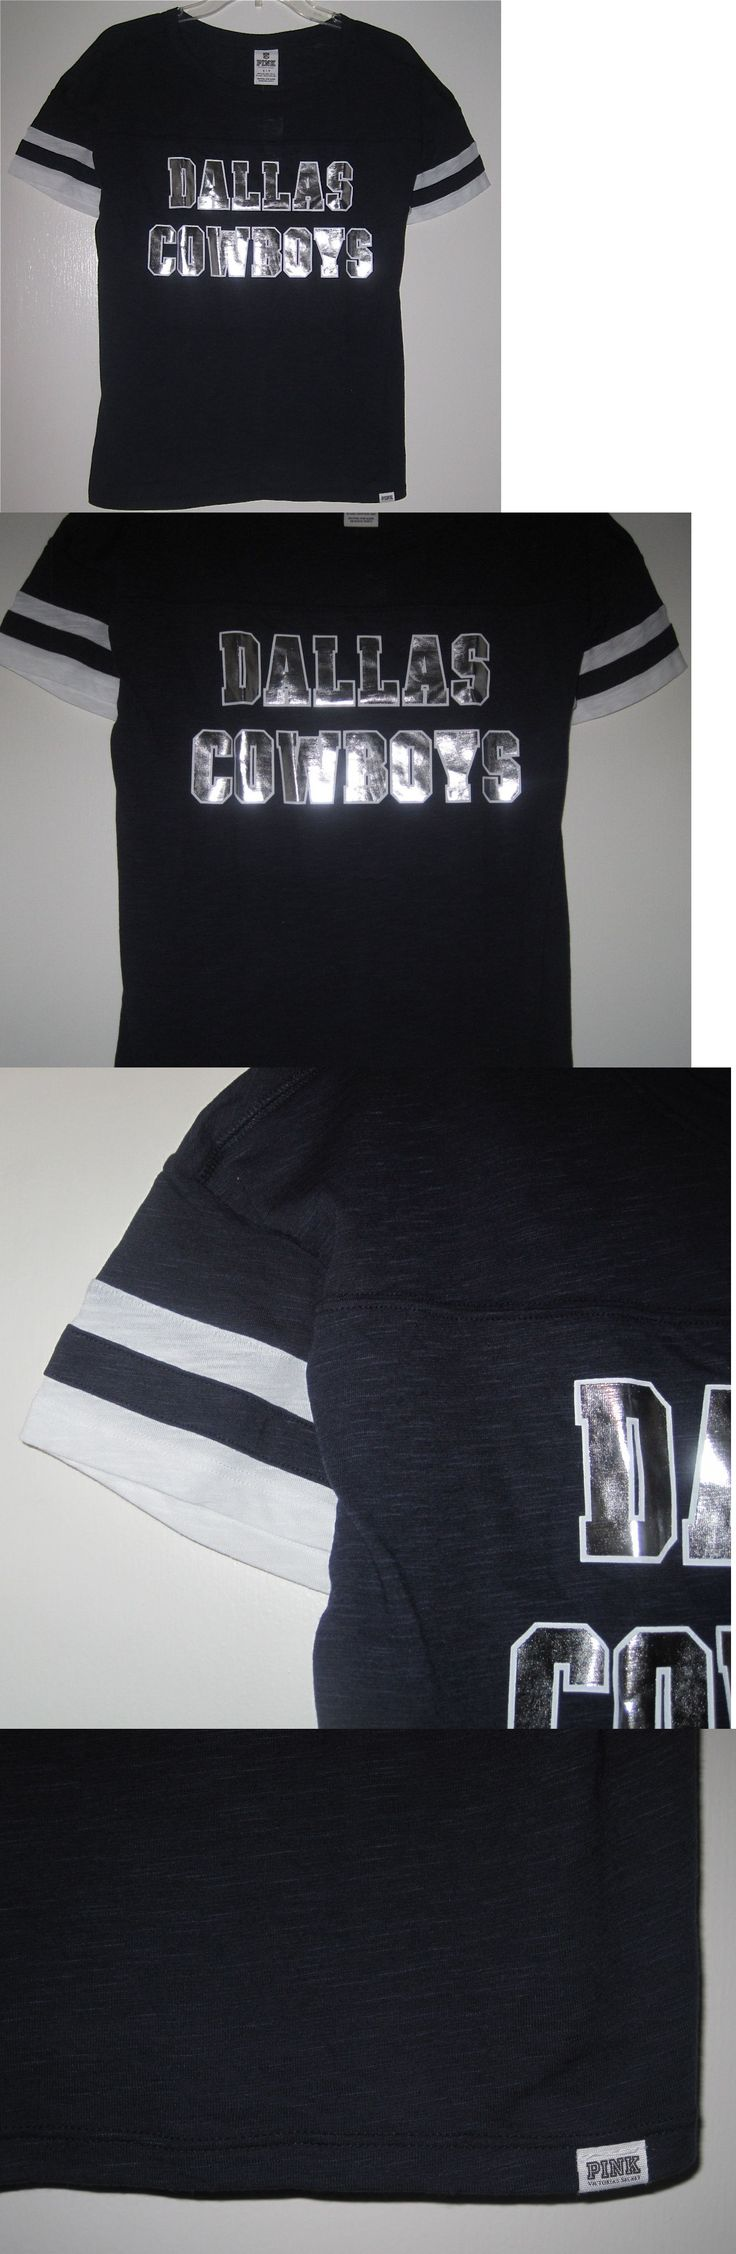 Women T Shirts: Nwt Victoria S Secret Pink Dallas Cowboys Silver Bling Stripe Sleeve T Shirt Top -> BUY IT NOW ONLY: $44.99 on eBay!